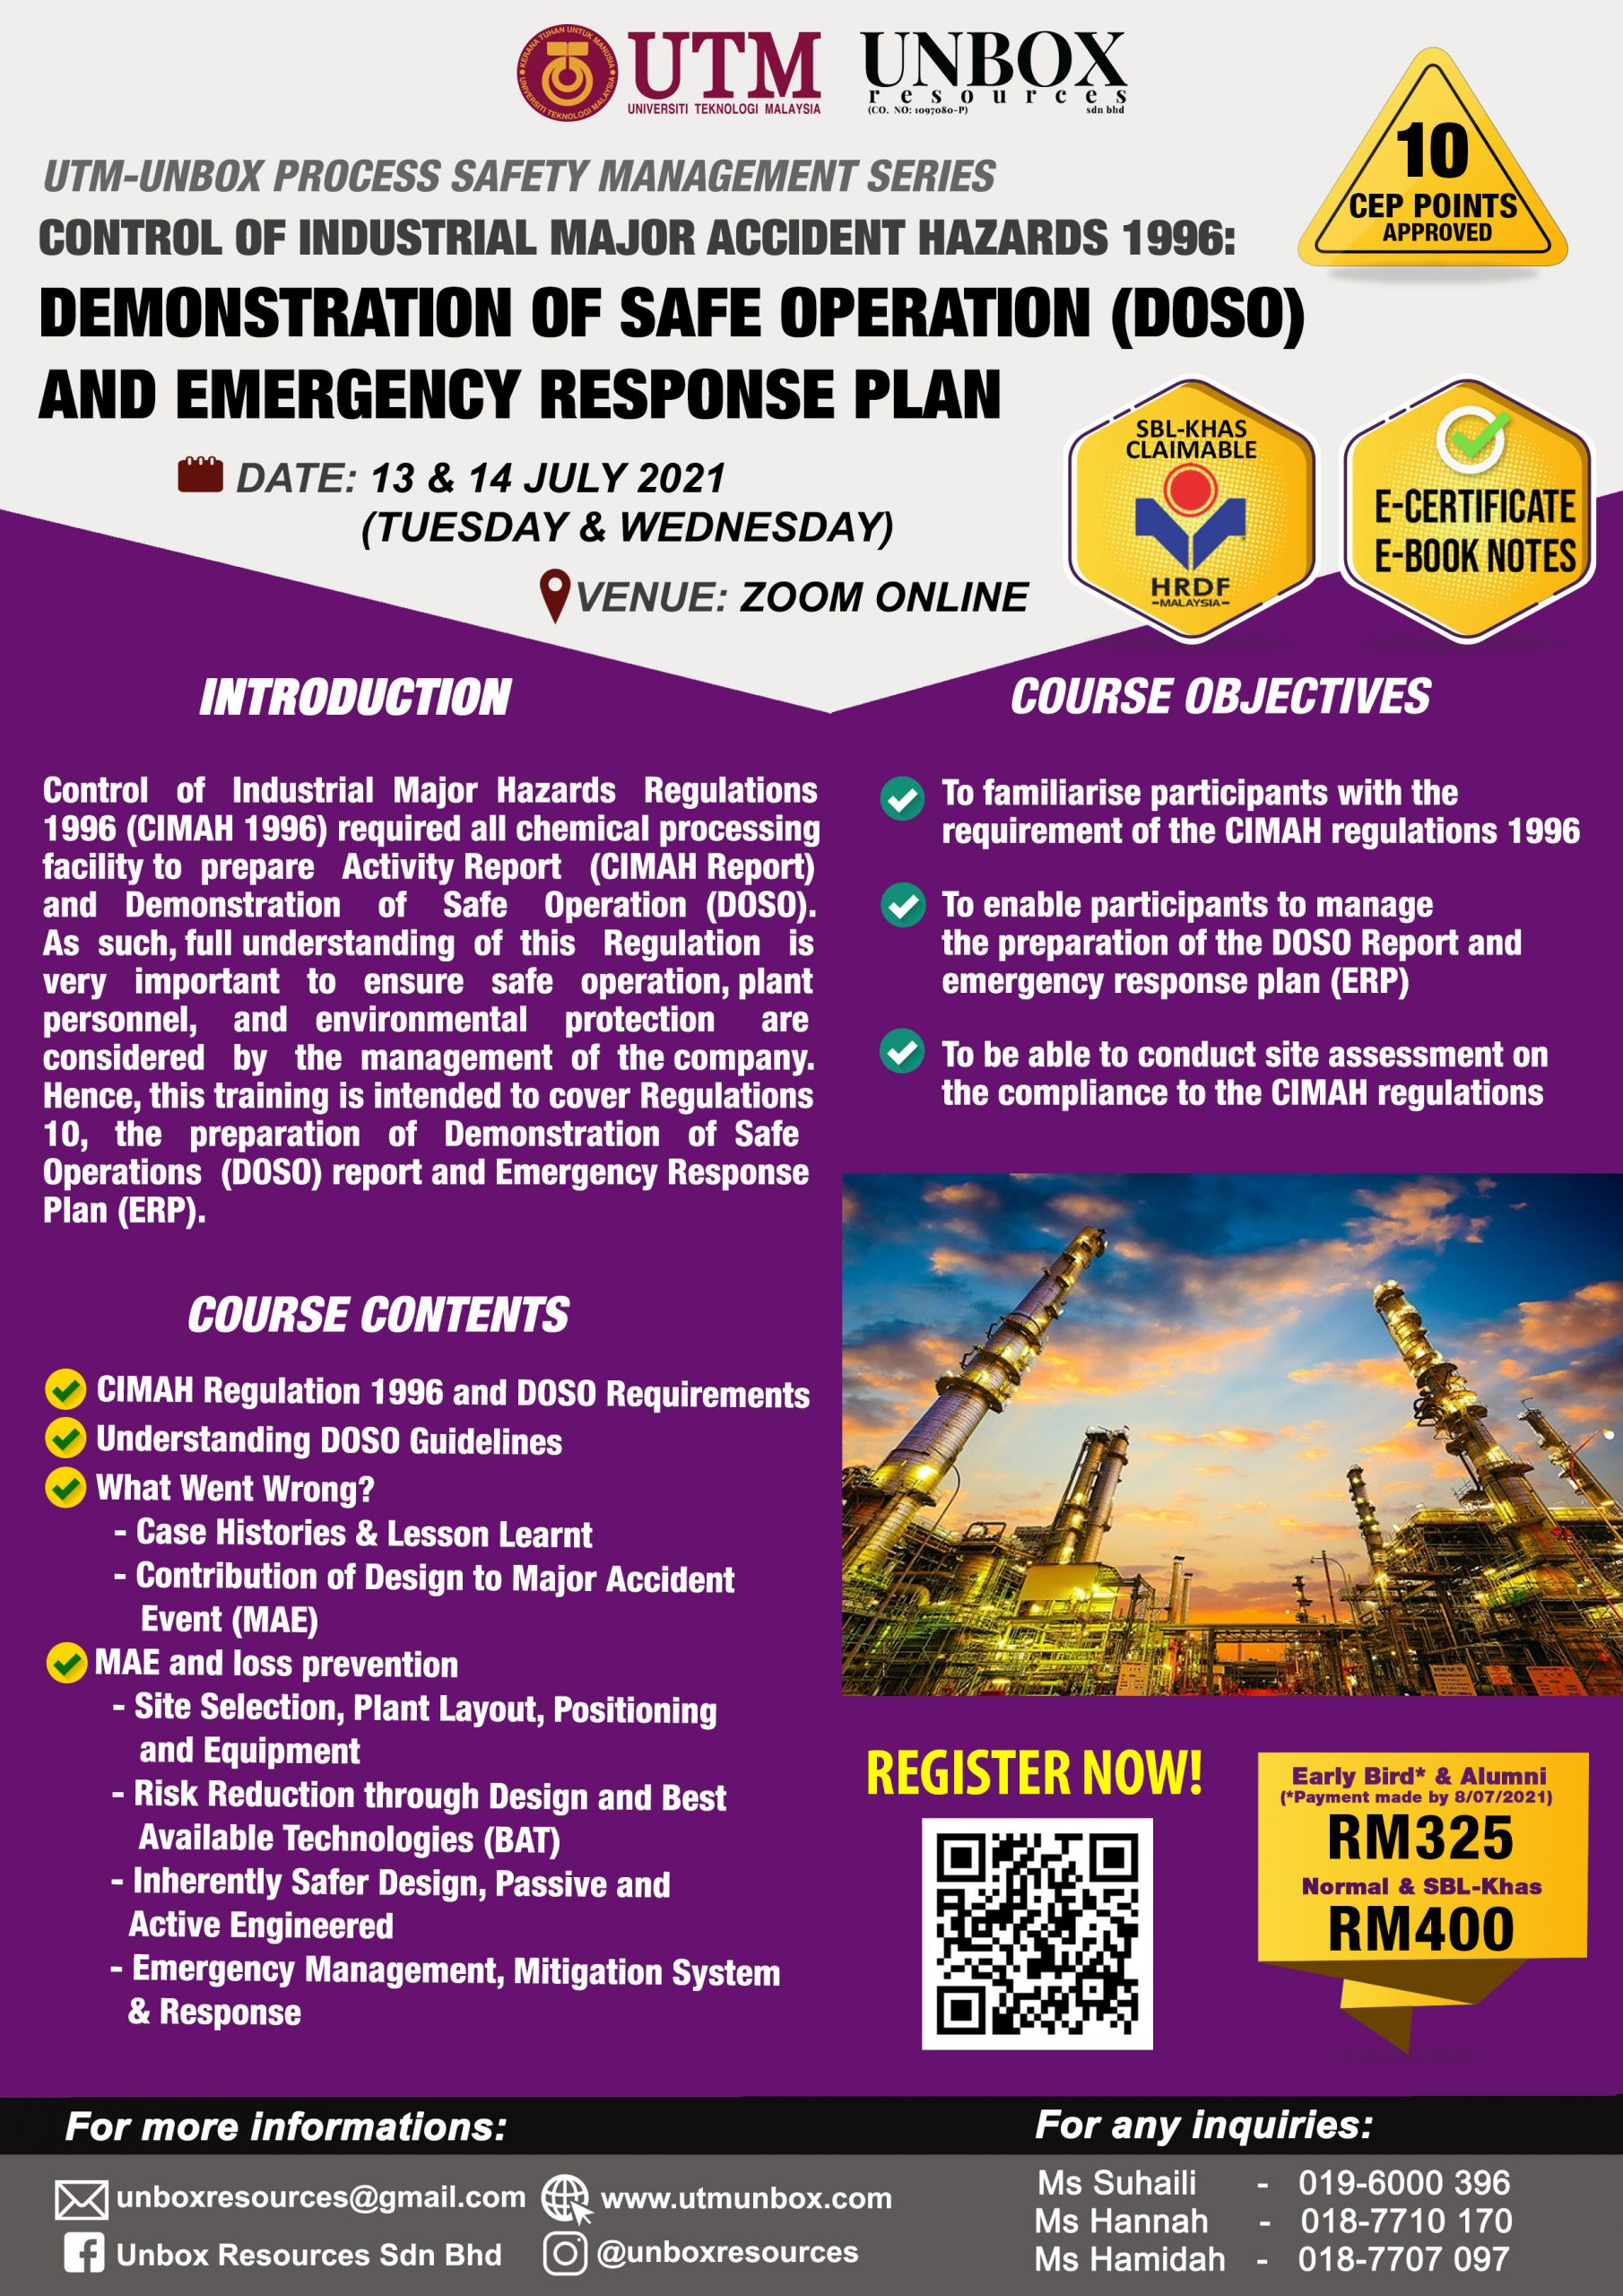 Control of Industrial Major Accident Hazards 1996: DEMONSTRATION OF SAFE OPERATION (DOSO) AND EMERGENCY RESPONSE PLAN